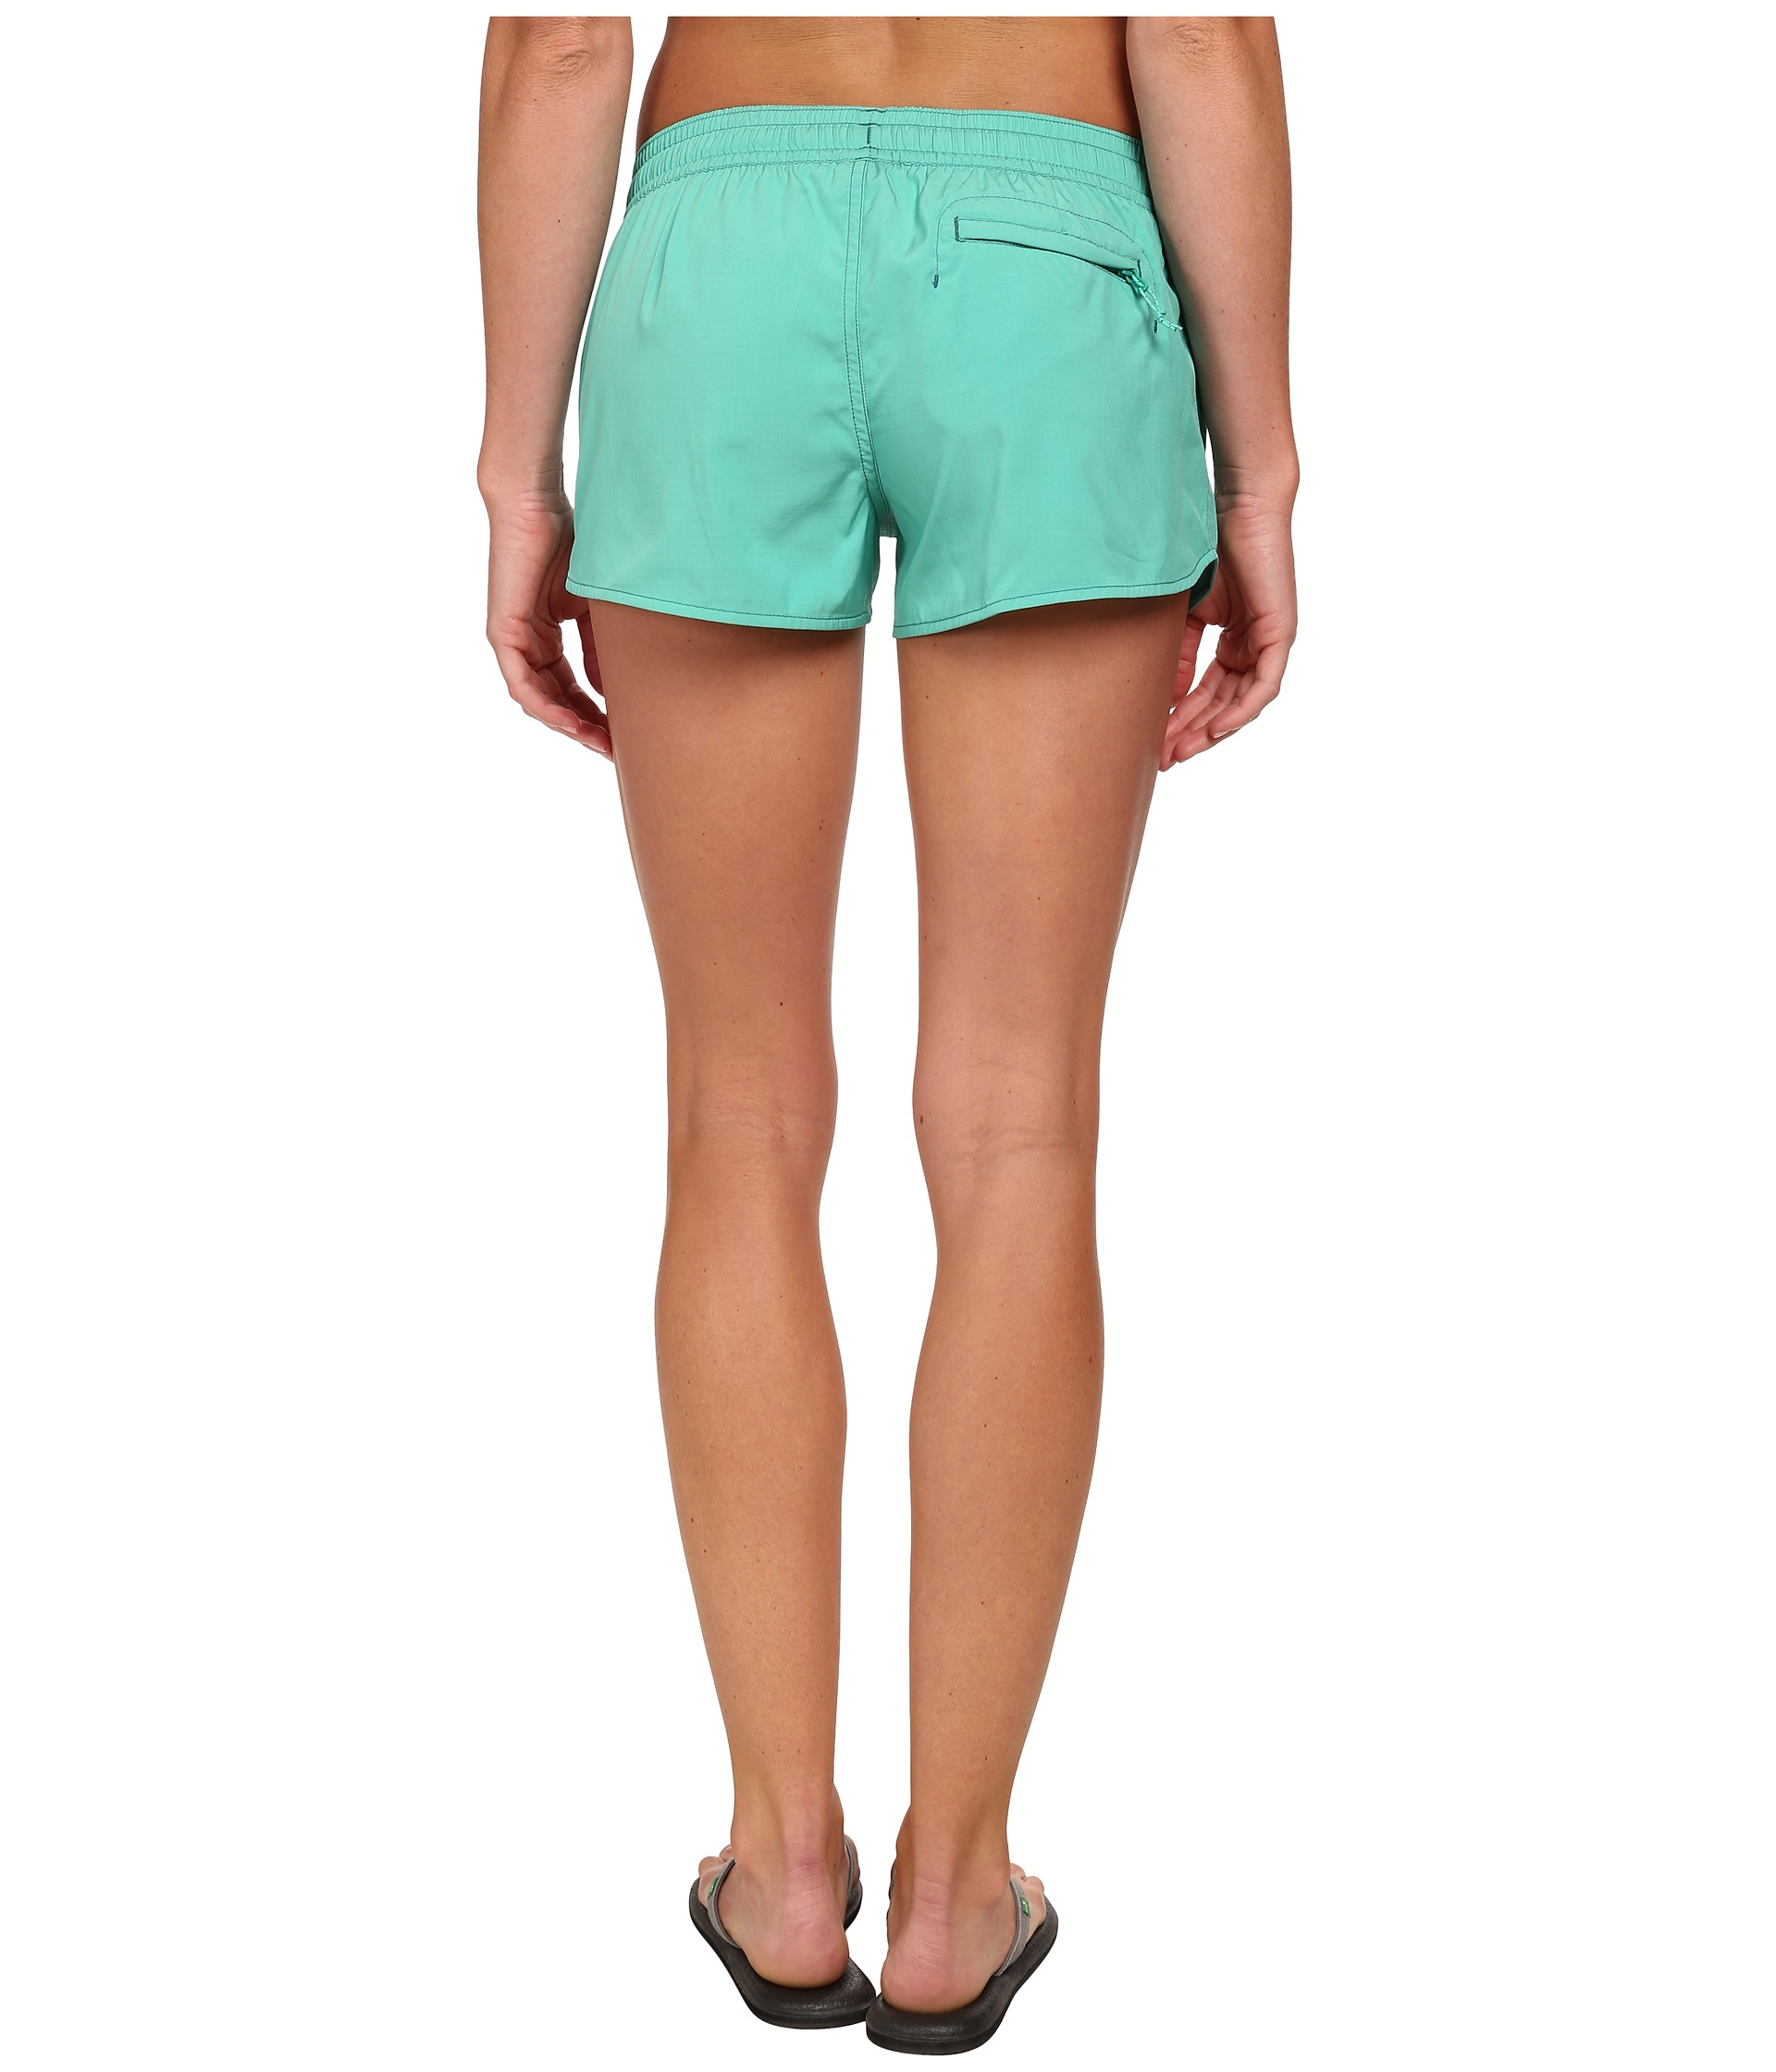 77e0cefc47c Patagonia Light And Variable Board Shorts in Blue - Lyst